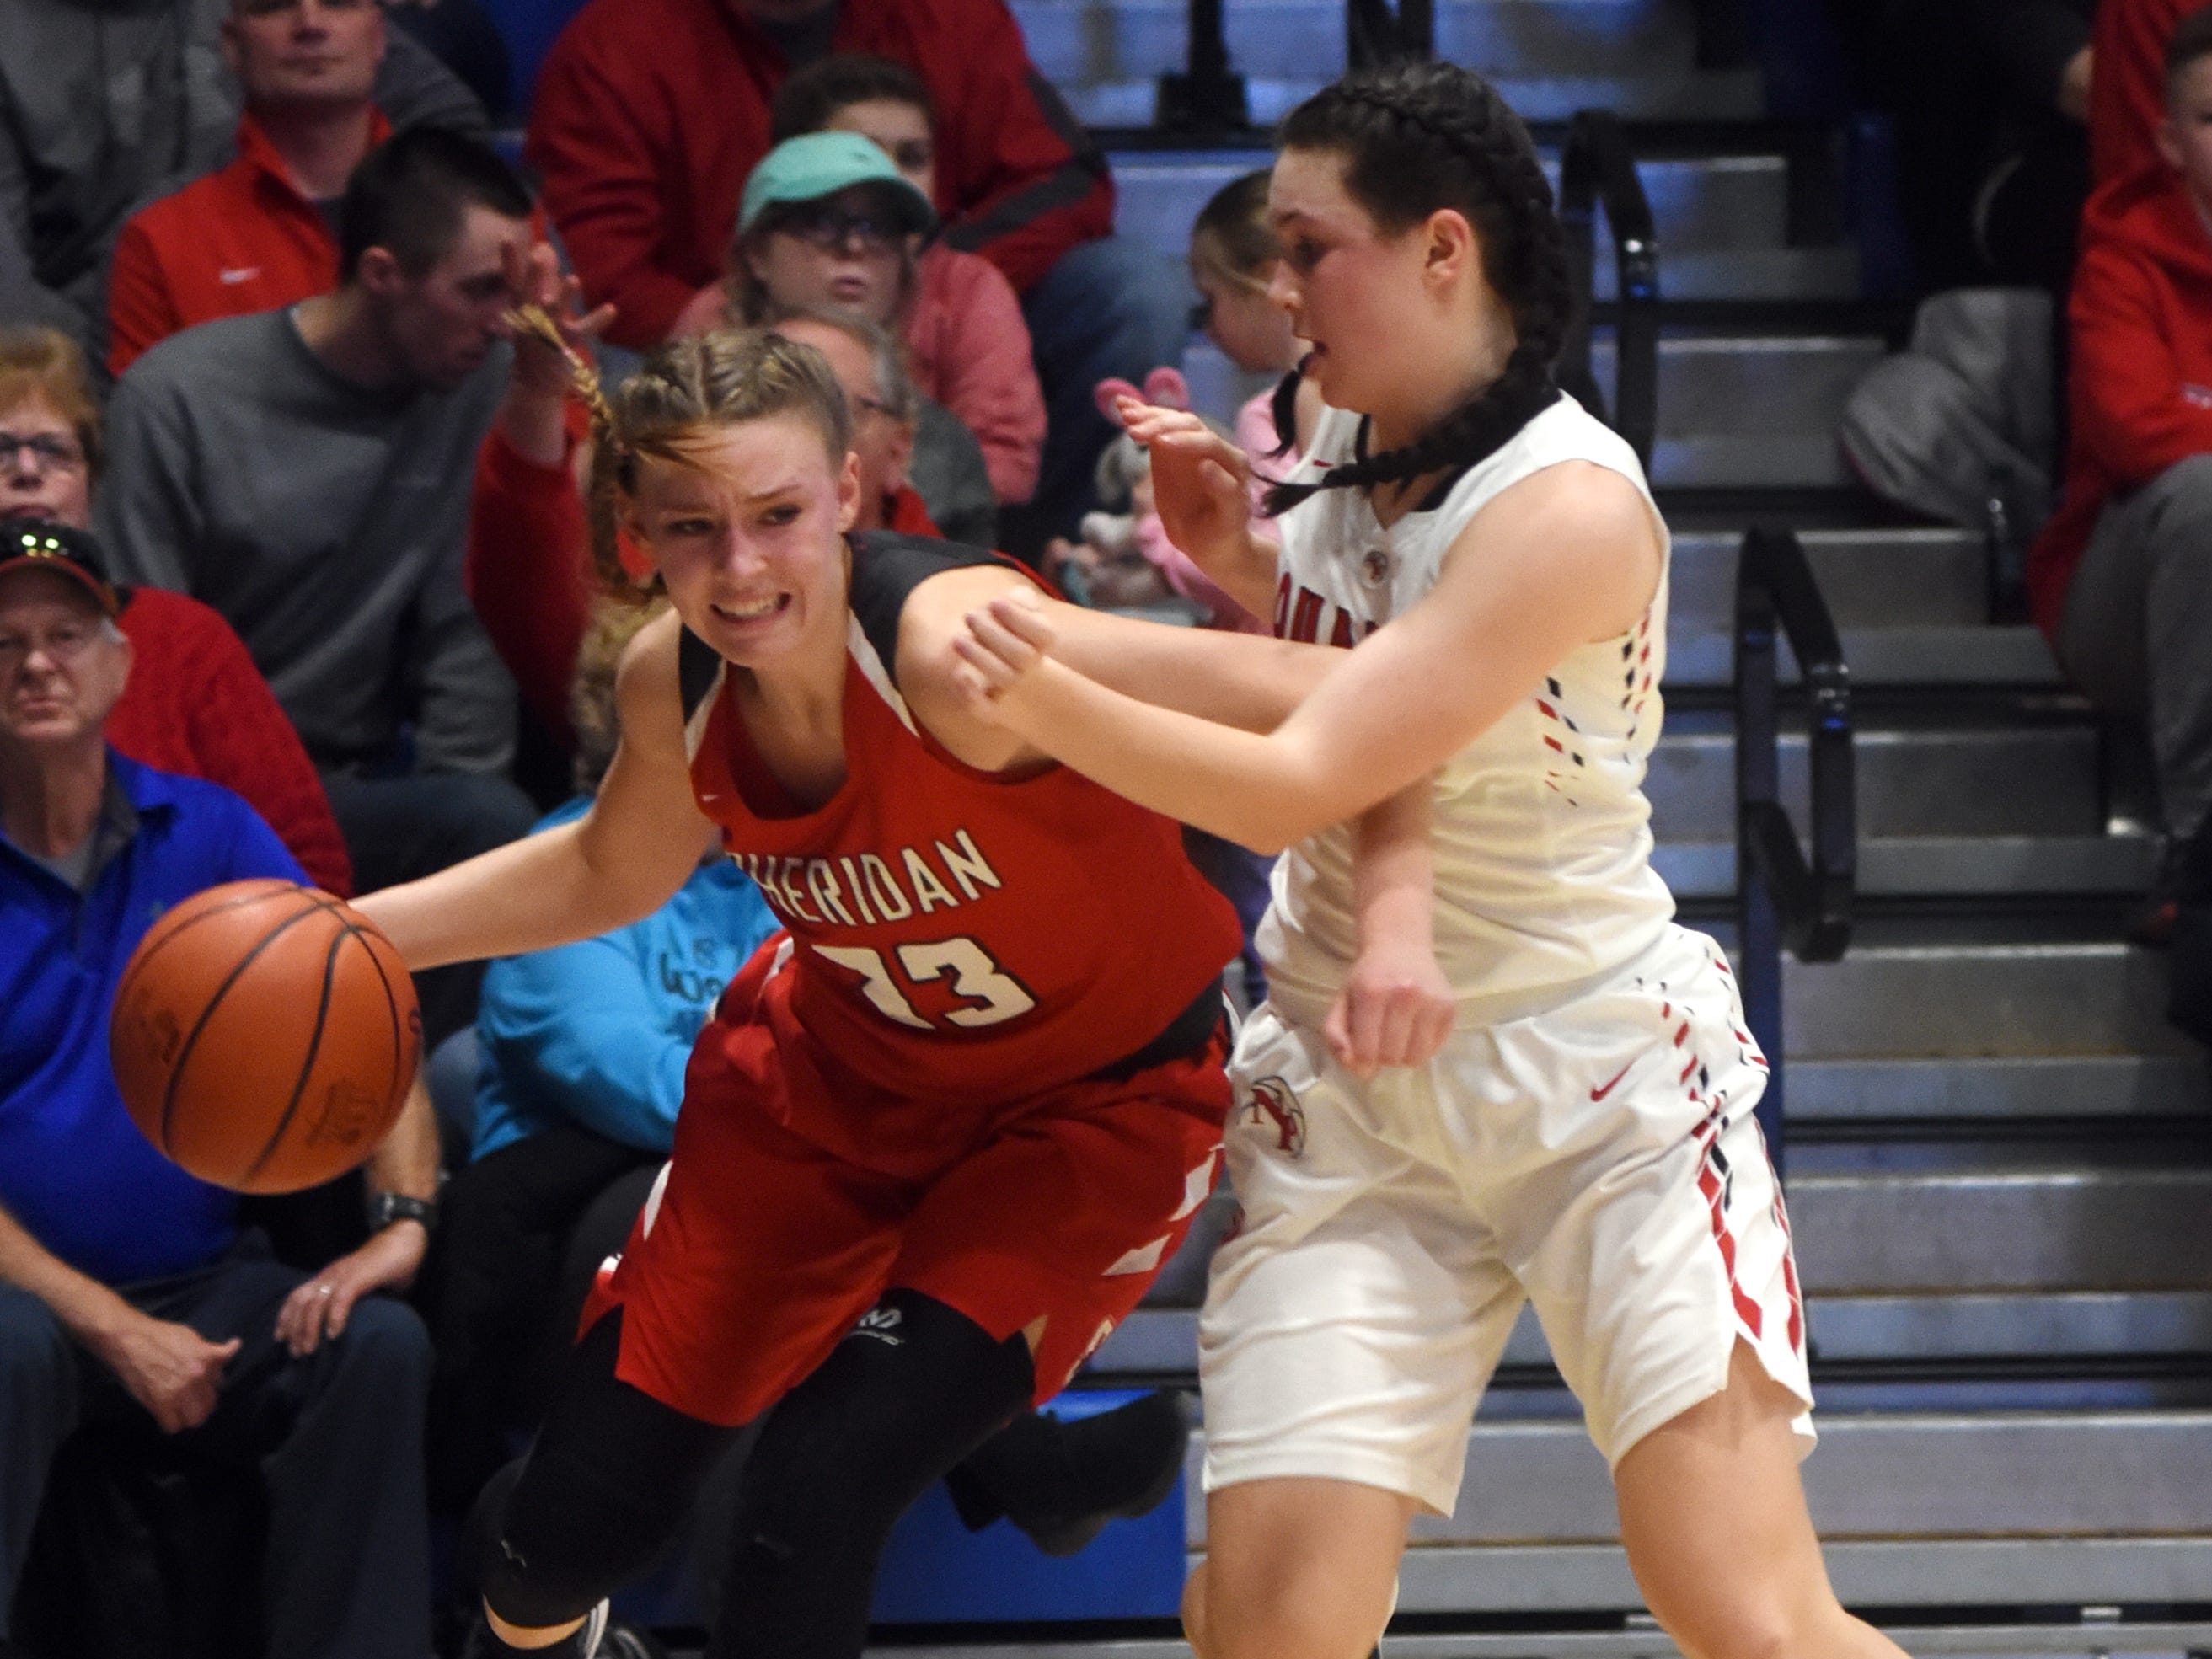 Sheridan's Emma Conrad drives the baseline against New Philadelphia on Friday night in a Division II regional final at Winland Memorial Gymnasium. The Generals reached their first state tournament since 2004 with a 48-46 win.